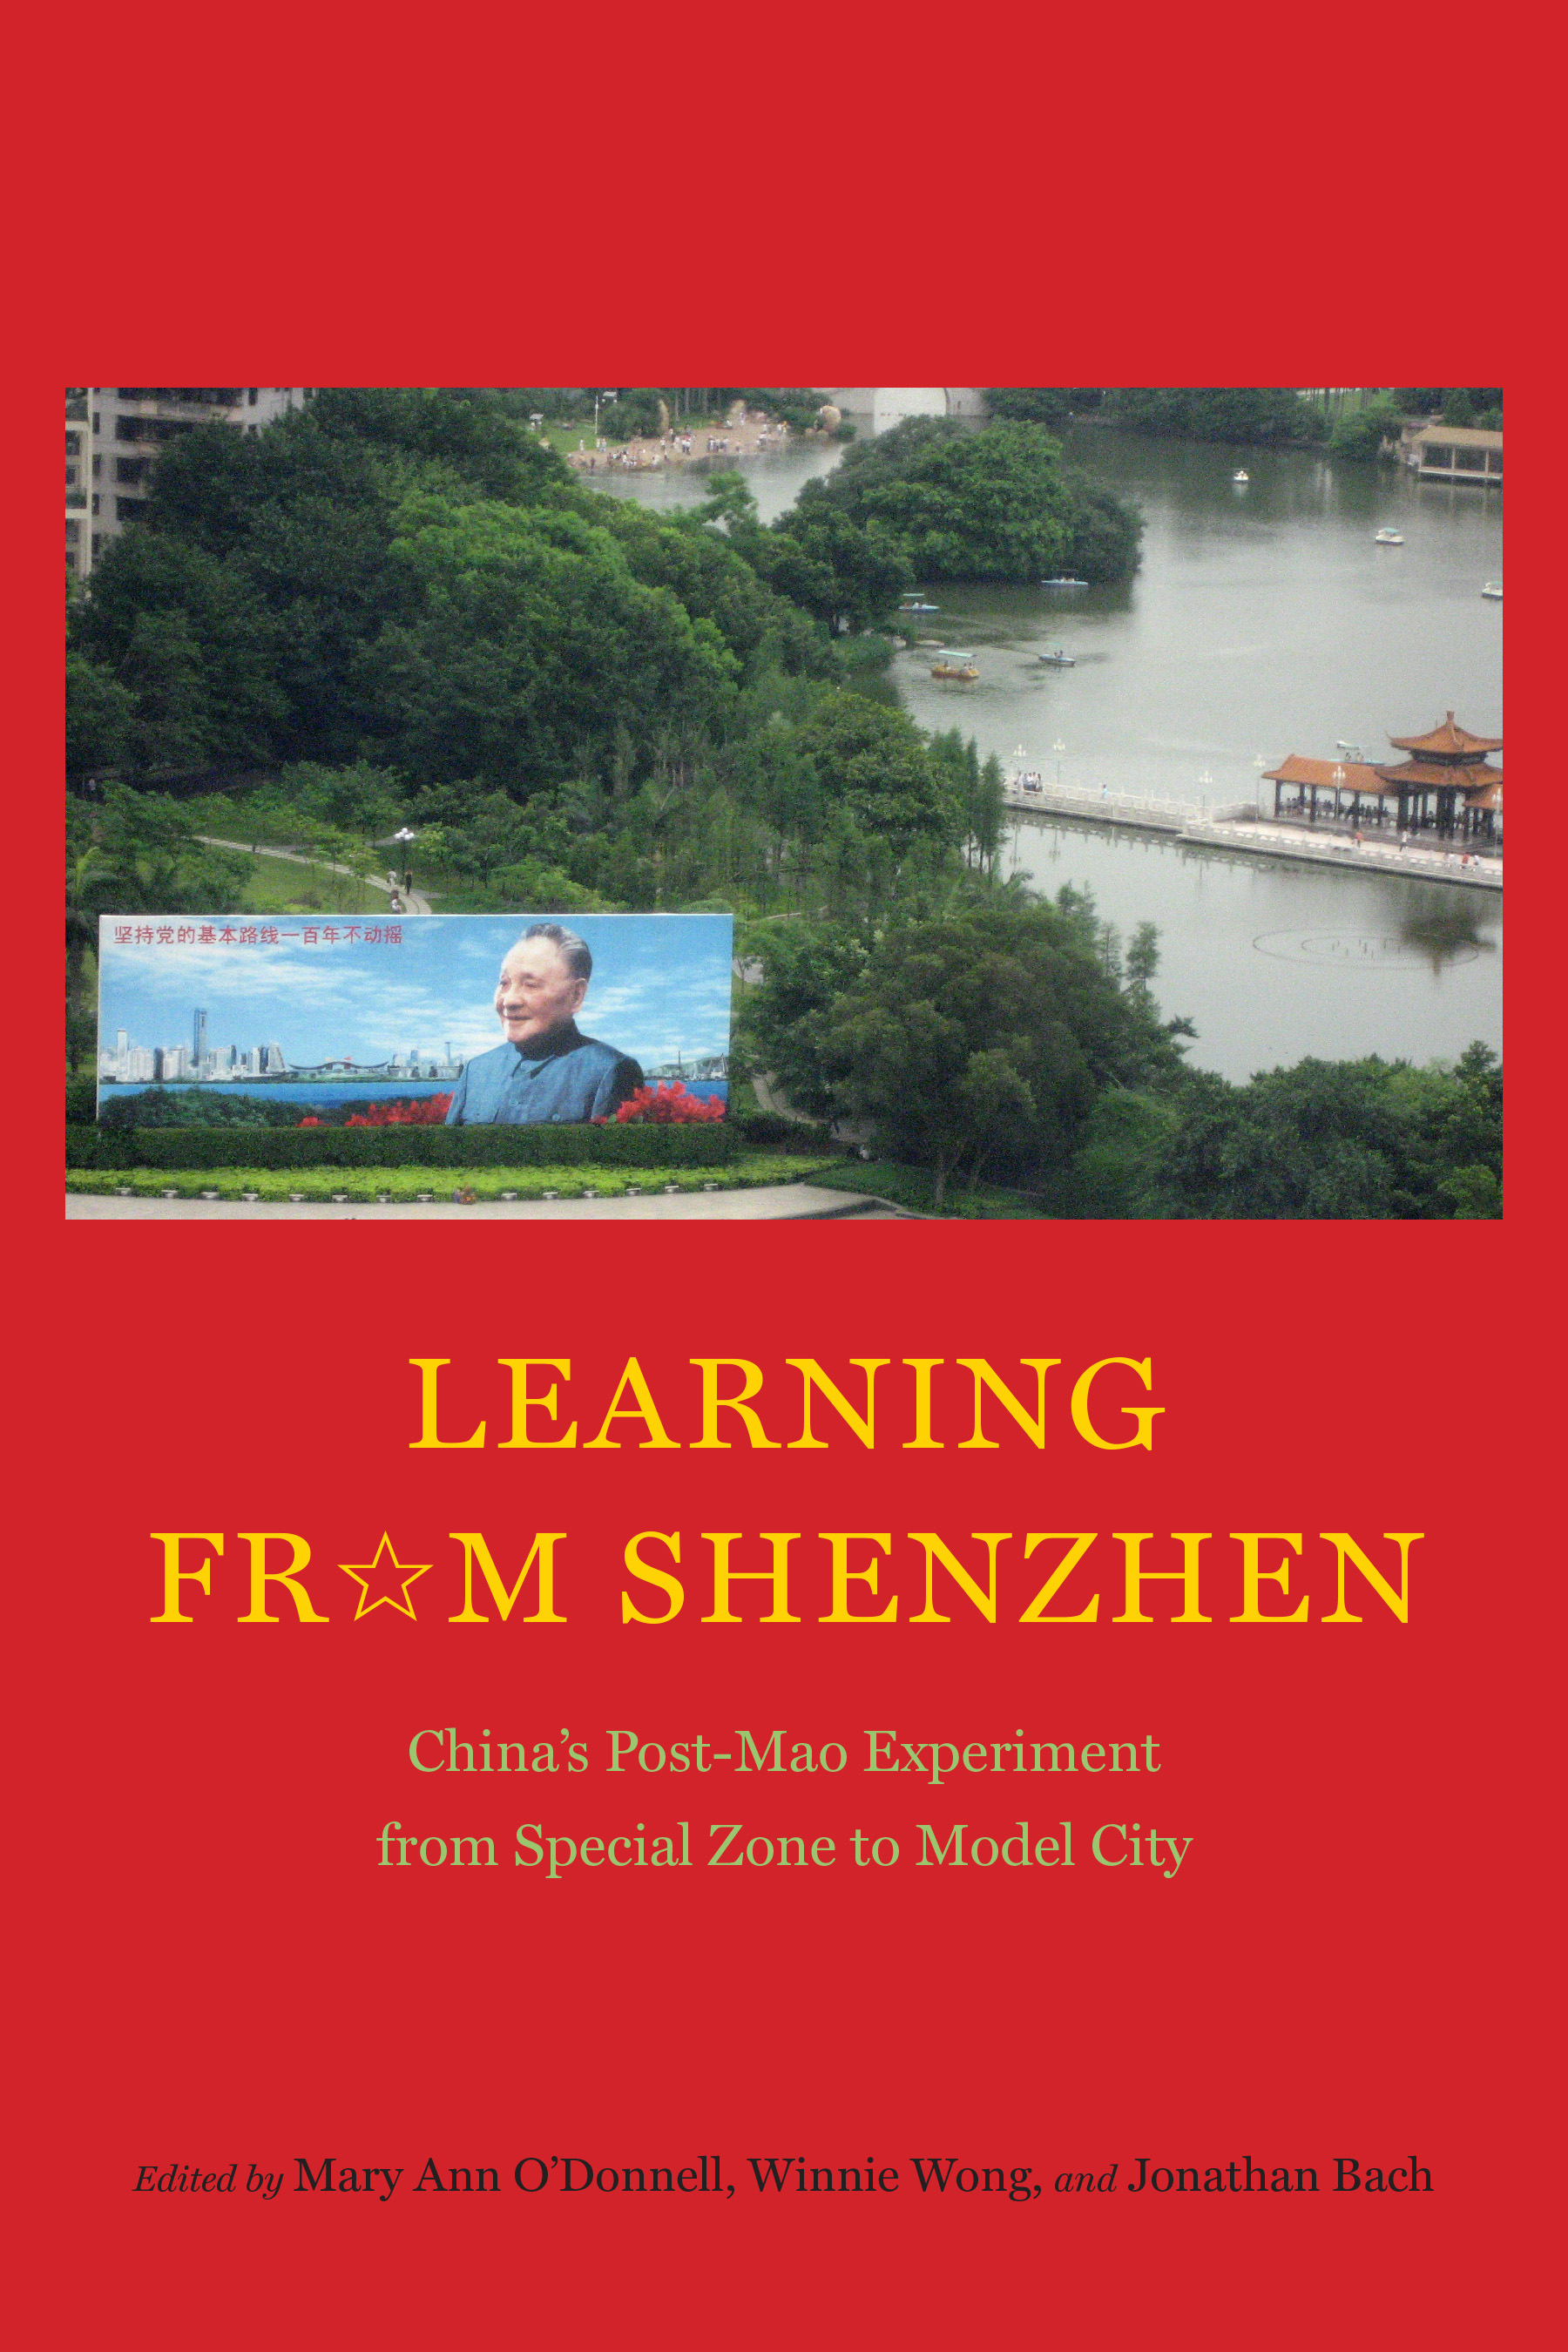 Jonathan Bach's New Book on China's Fastest Growing City of Shenzhen